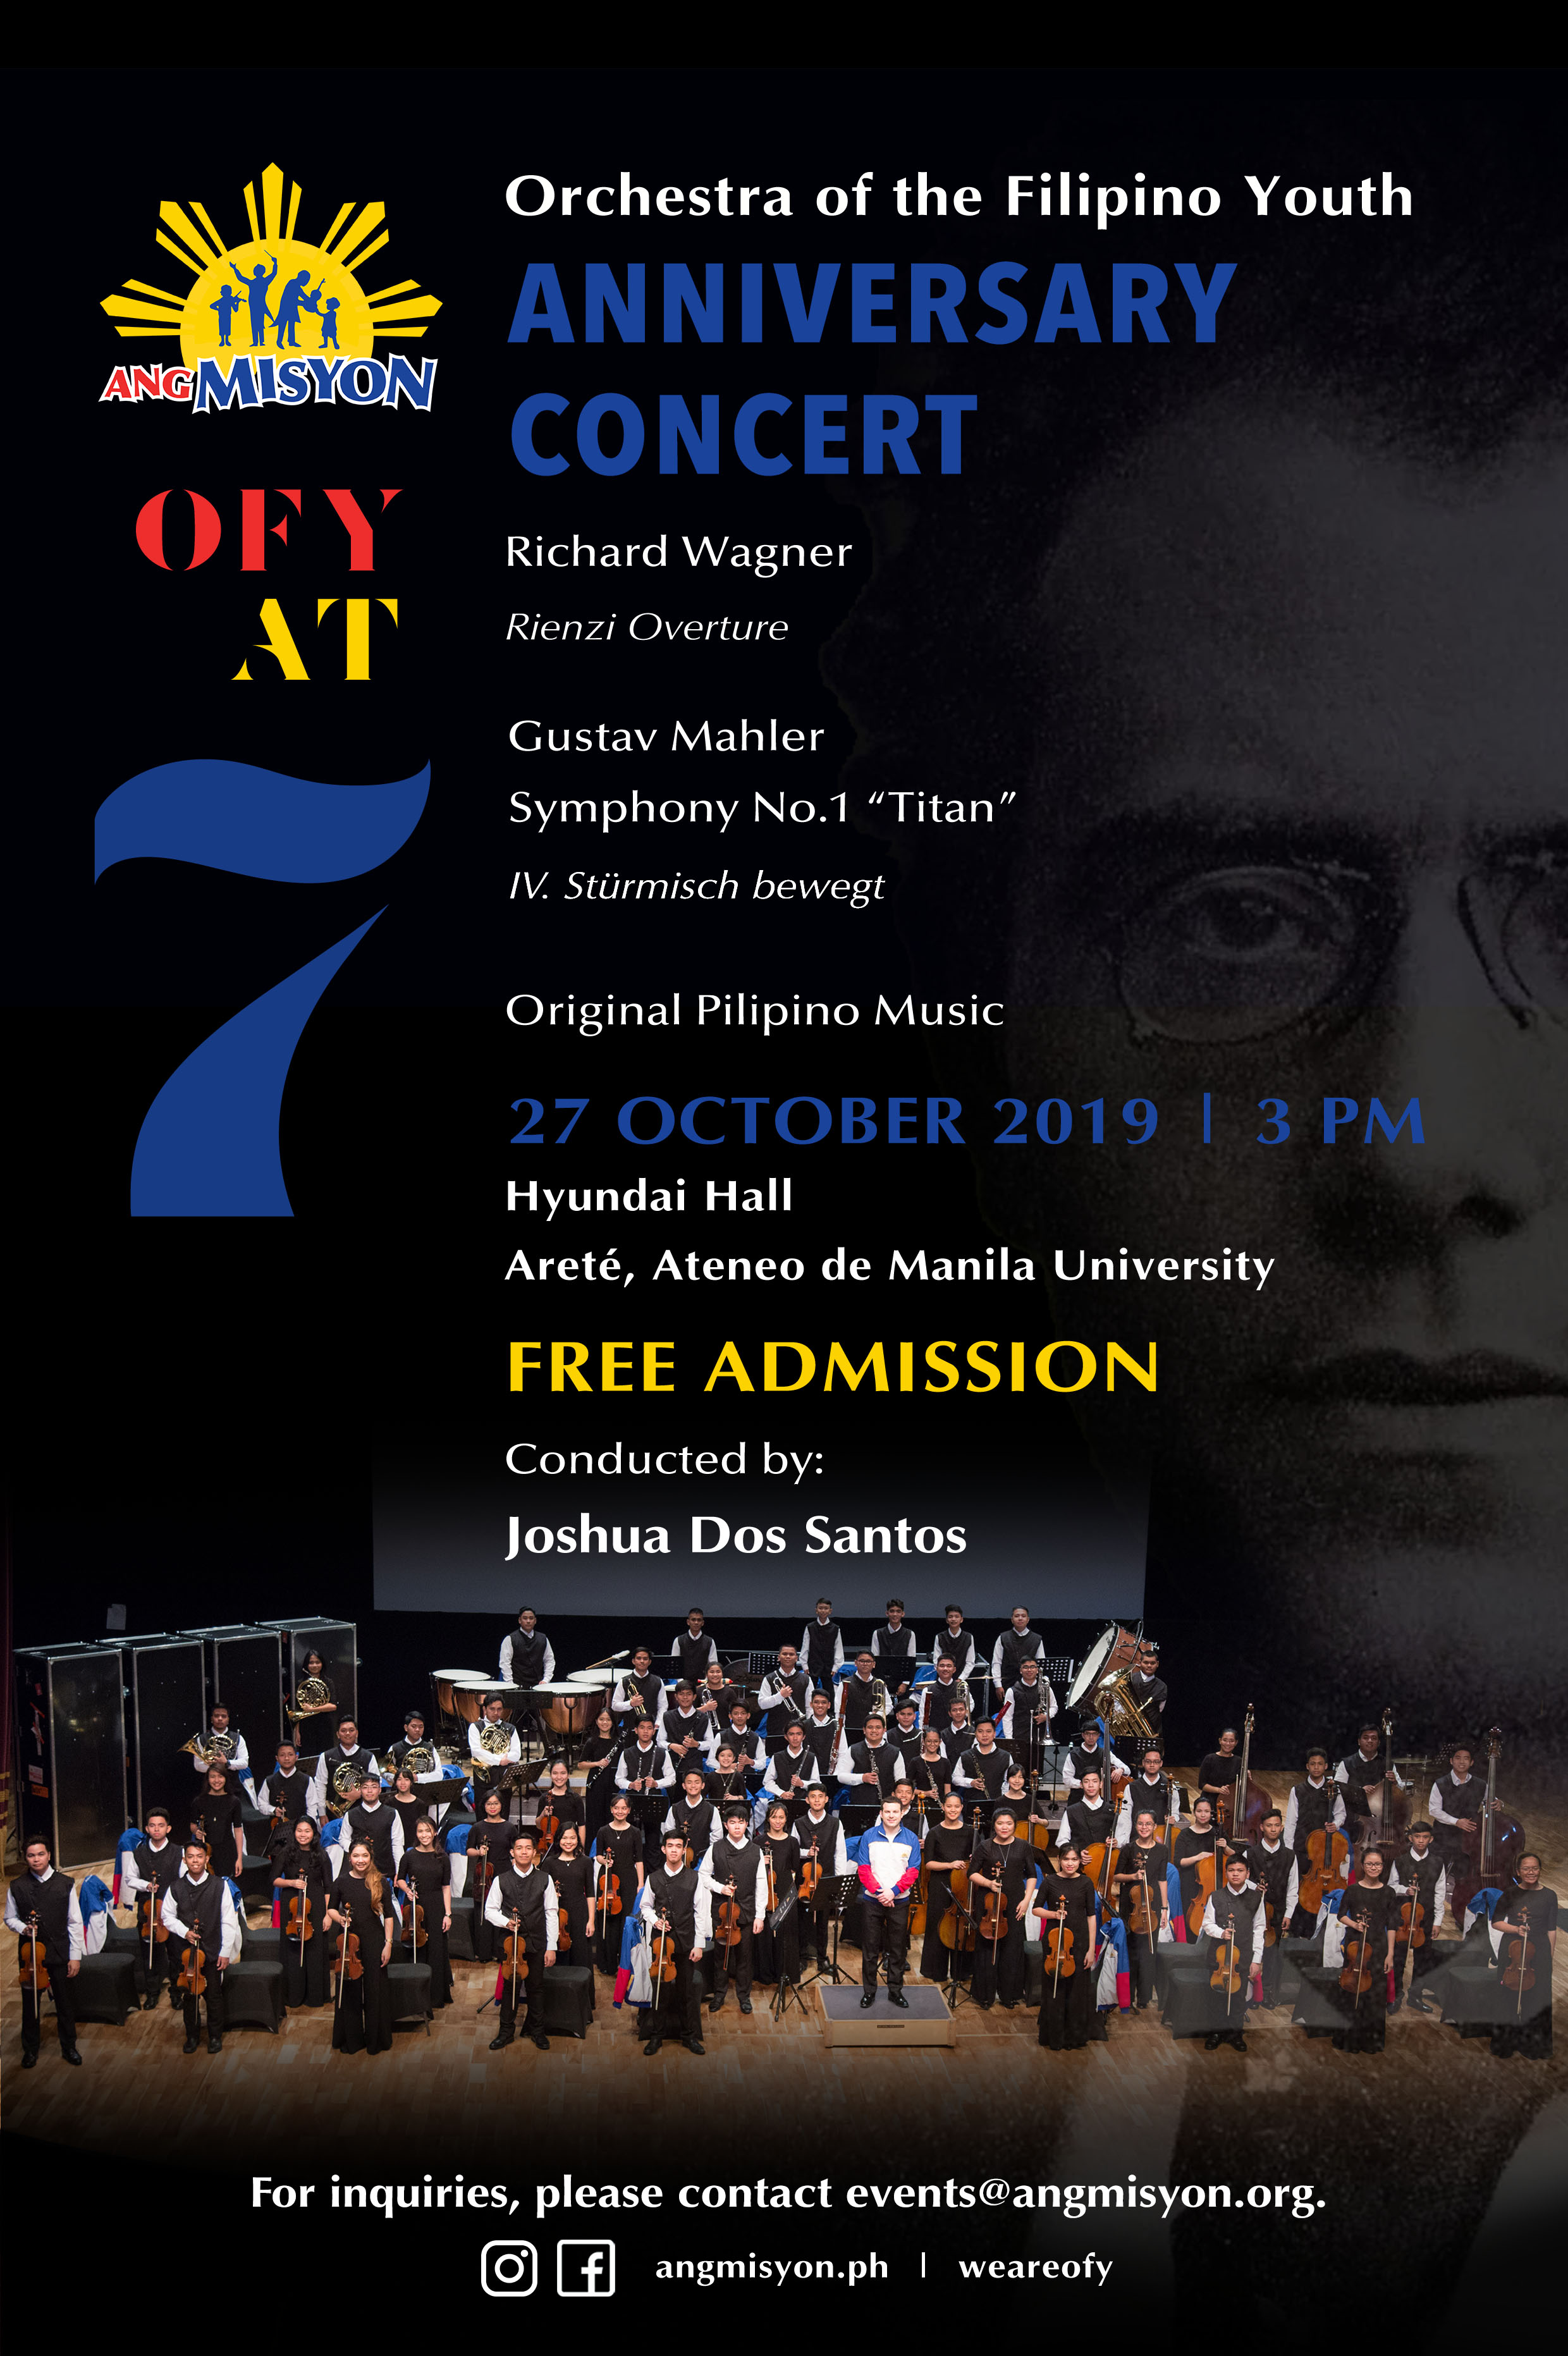 OFY celebrates 7 years with free concert